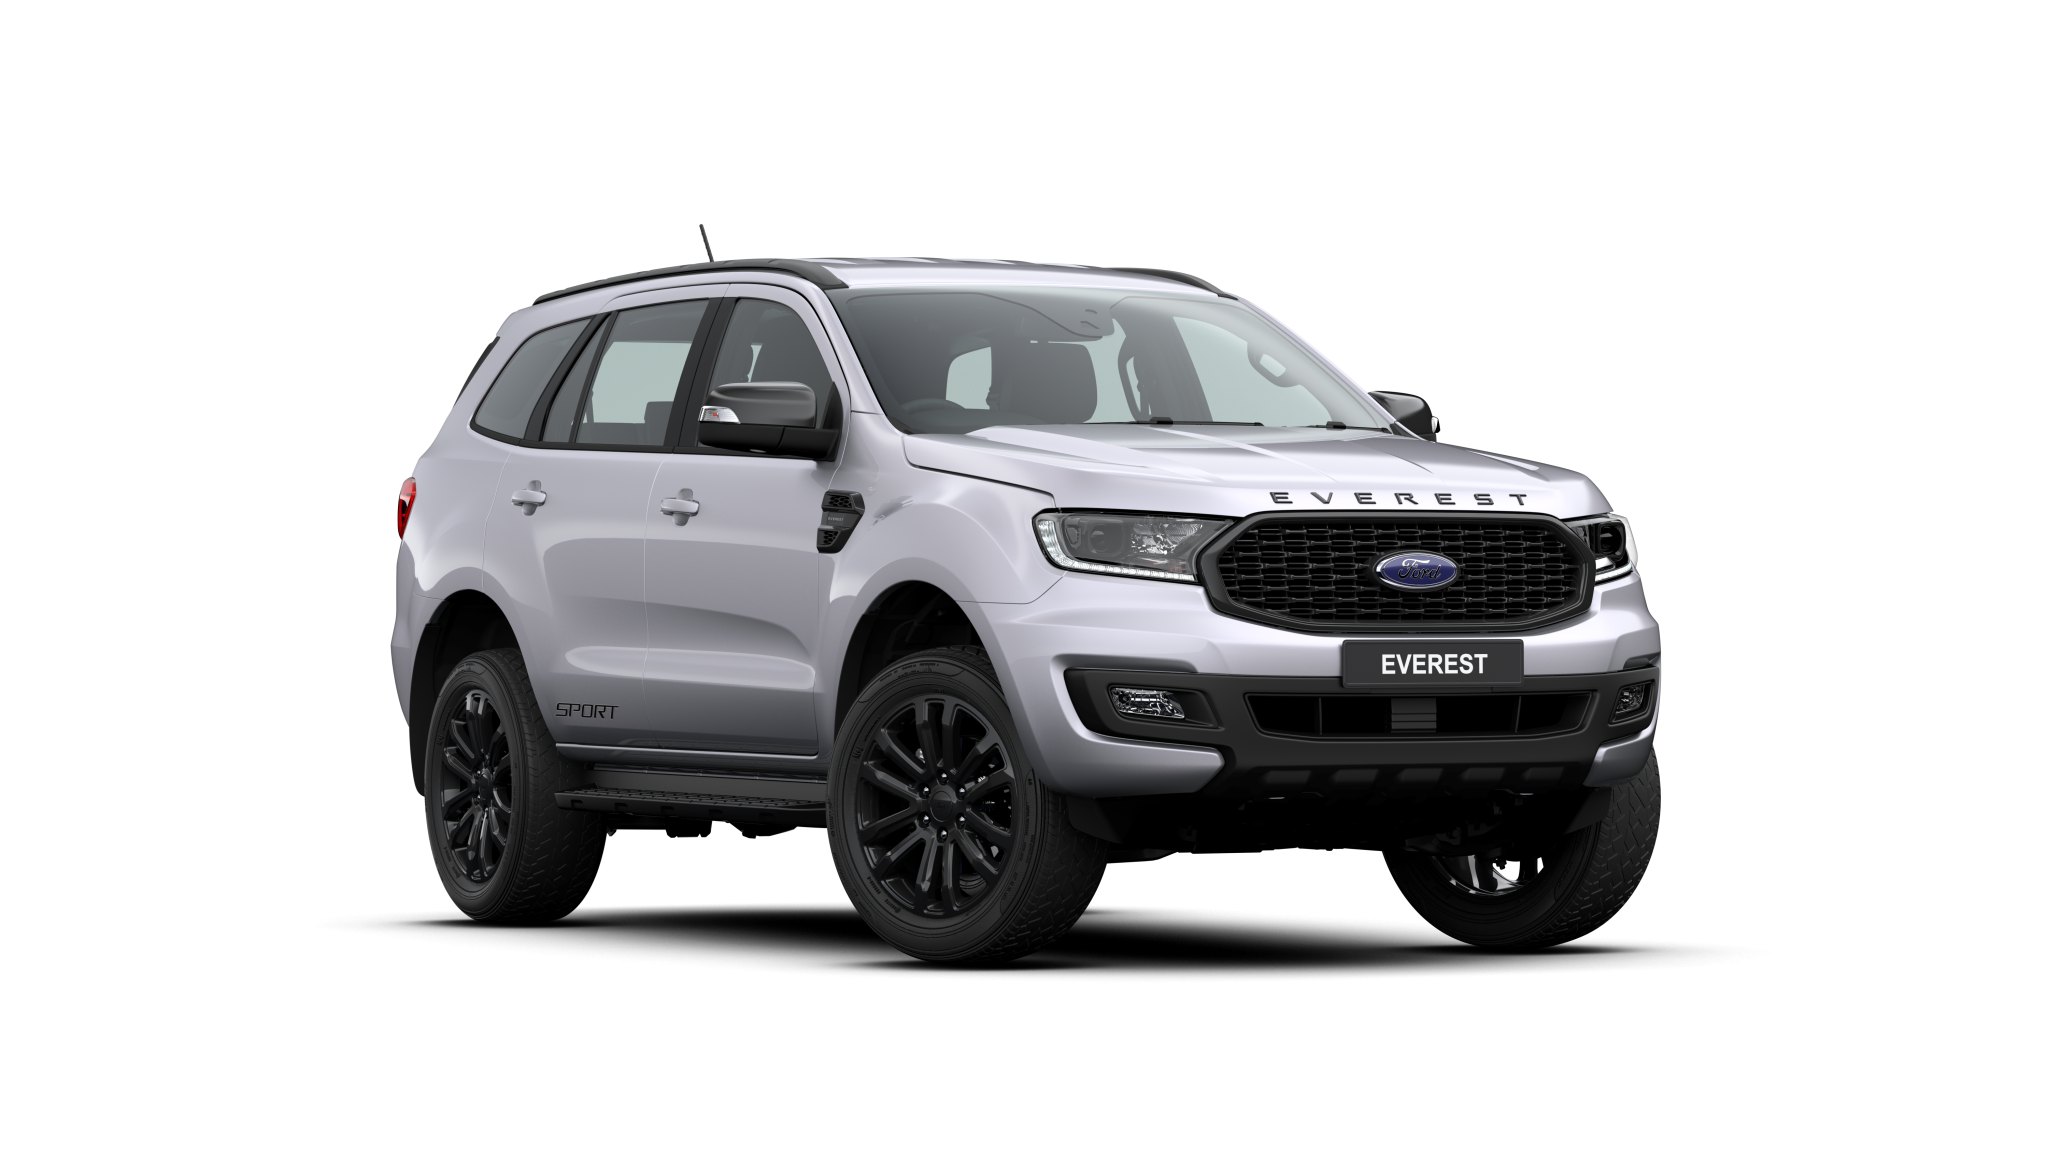 FORD EVEREST SPORT_U375ICA_TH_19D_SPORT_2000_4x2_Aluminium_01_FR34_R